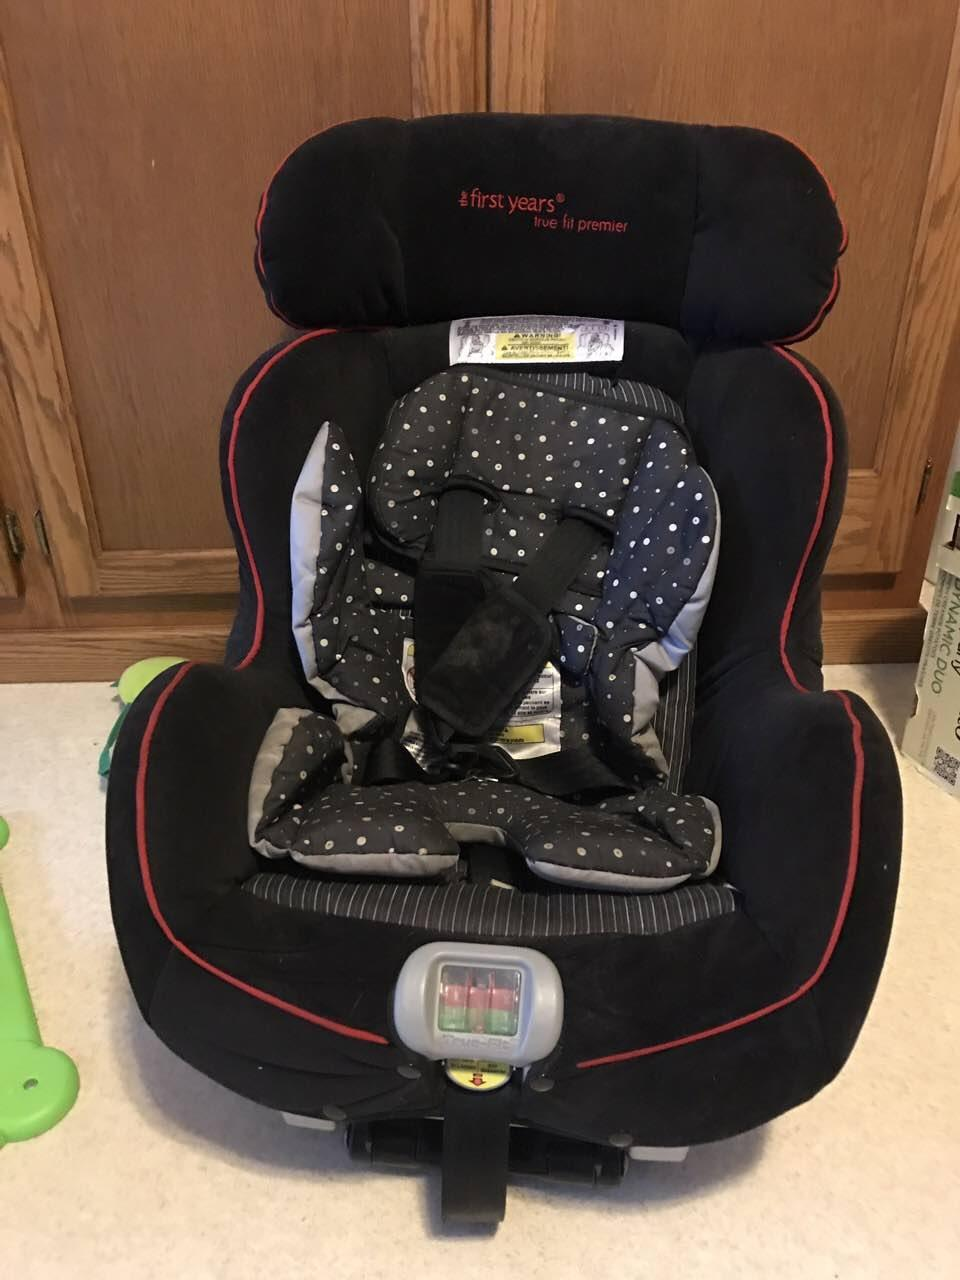 find more 1st years true fit premiere car seats for sale at up to 90 off. Black Bedroom Furniture Sets. Home Design Ideas